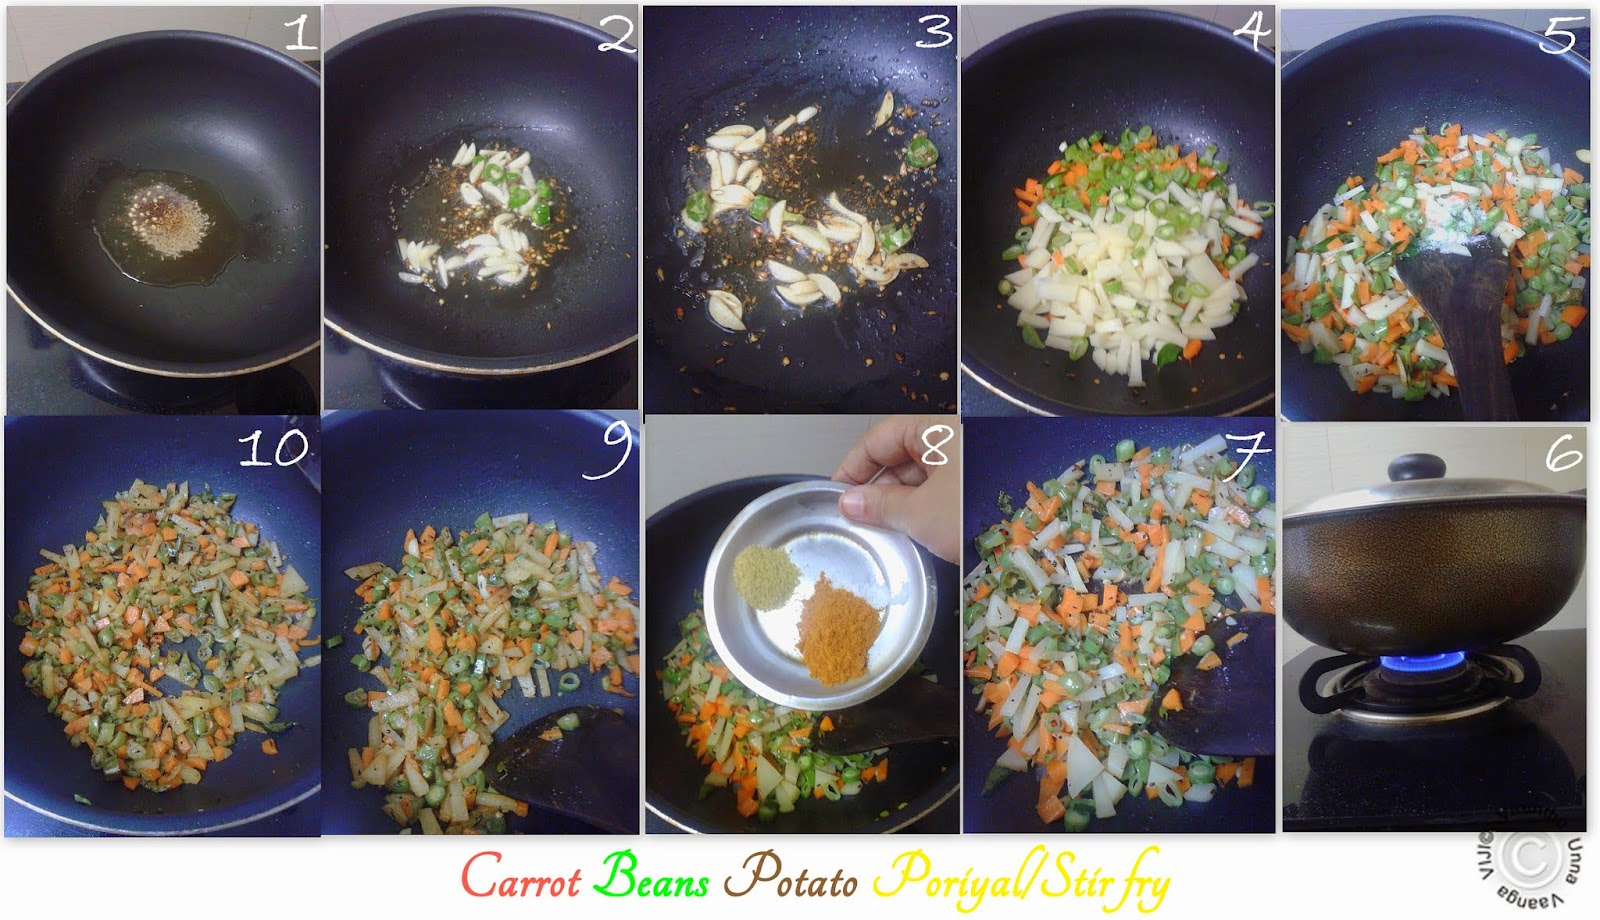 Carrot Beans Potato Stir fry